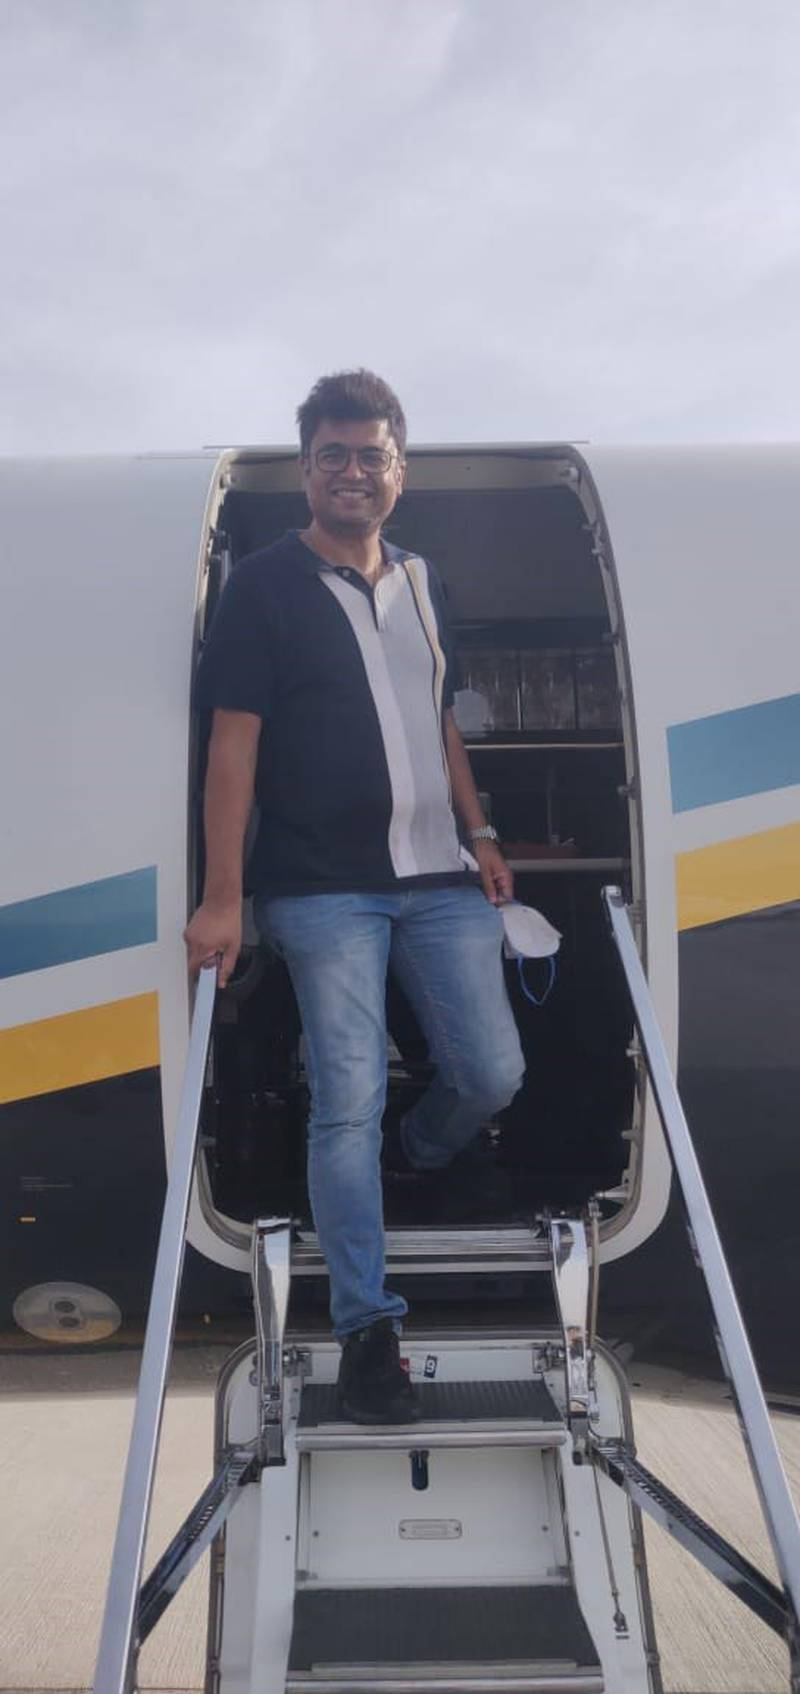 Dr Rahul Gupta returns to Dubai on a business jet with 13 others earlier this month after being stuck in India for weeks when he went to care for his mother-in-law. A quick diagnosis helped save the life of his mother-in-law who contracted Covid-19 in India. Courtesy: Dr Gupta